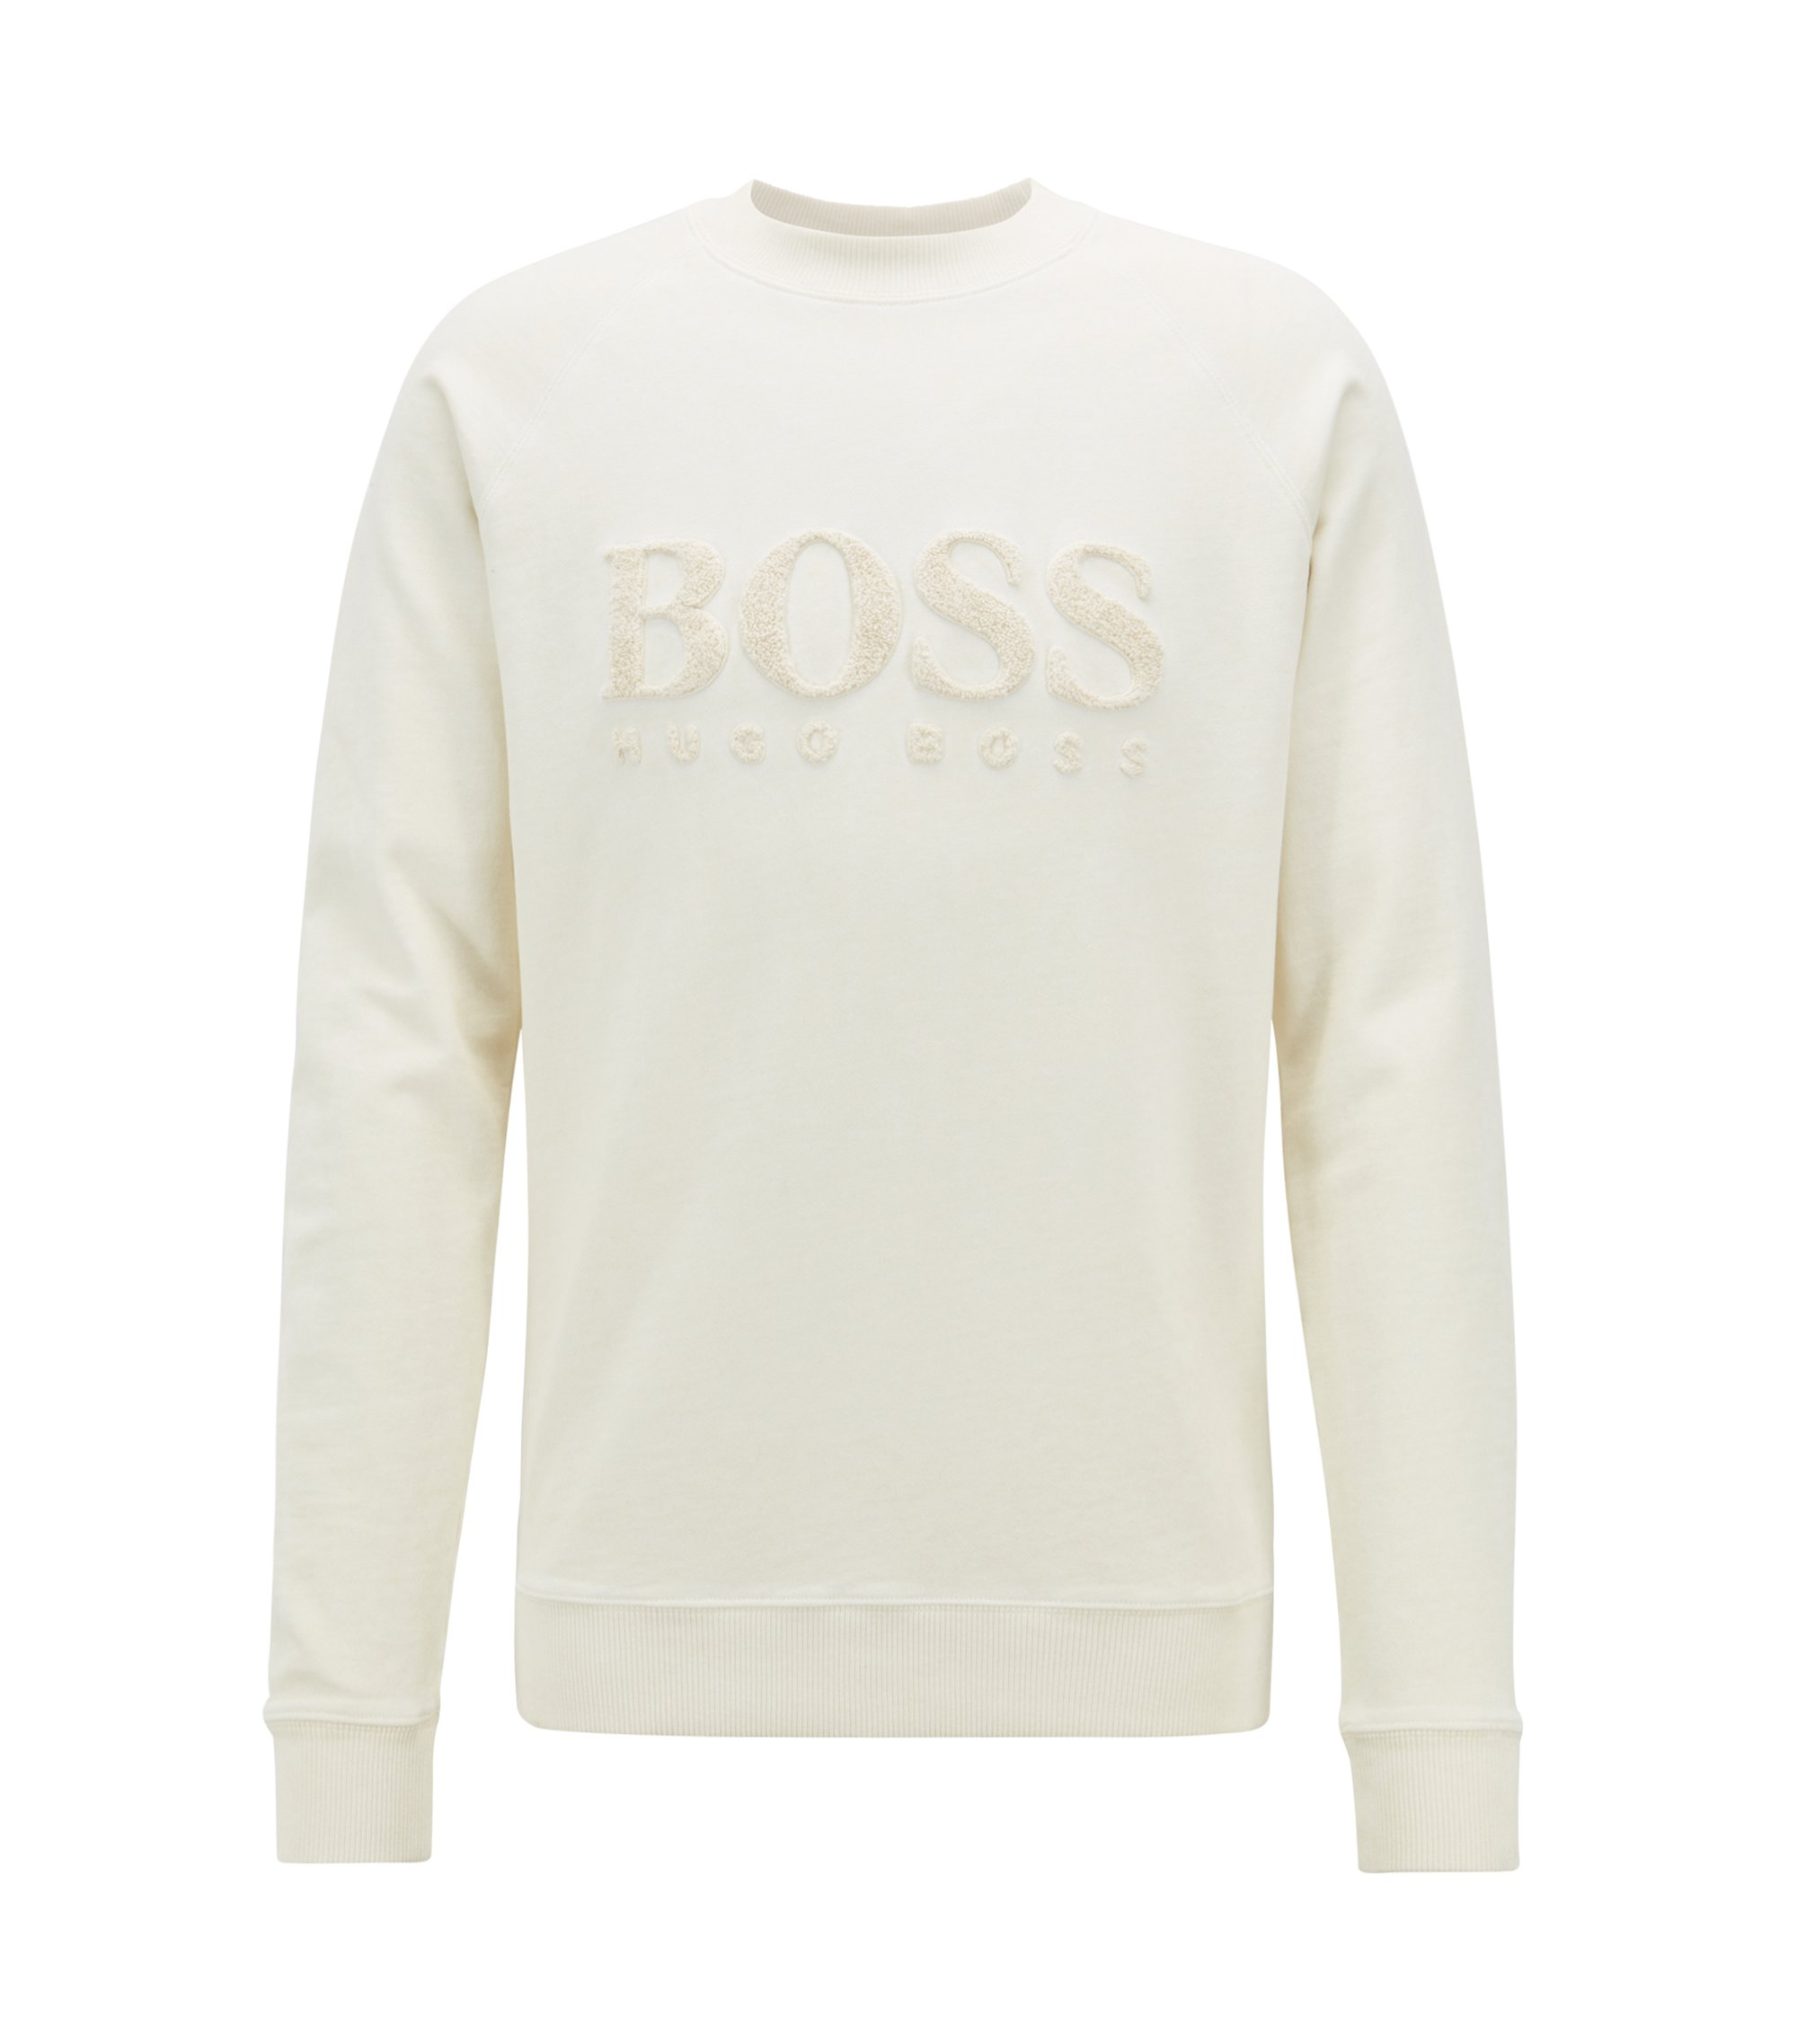 Sweatshirt aus French Terry mit Logo-Stickerei, Hellbeige